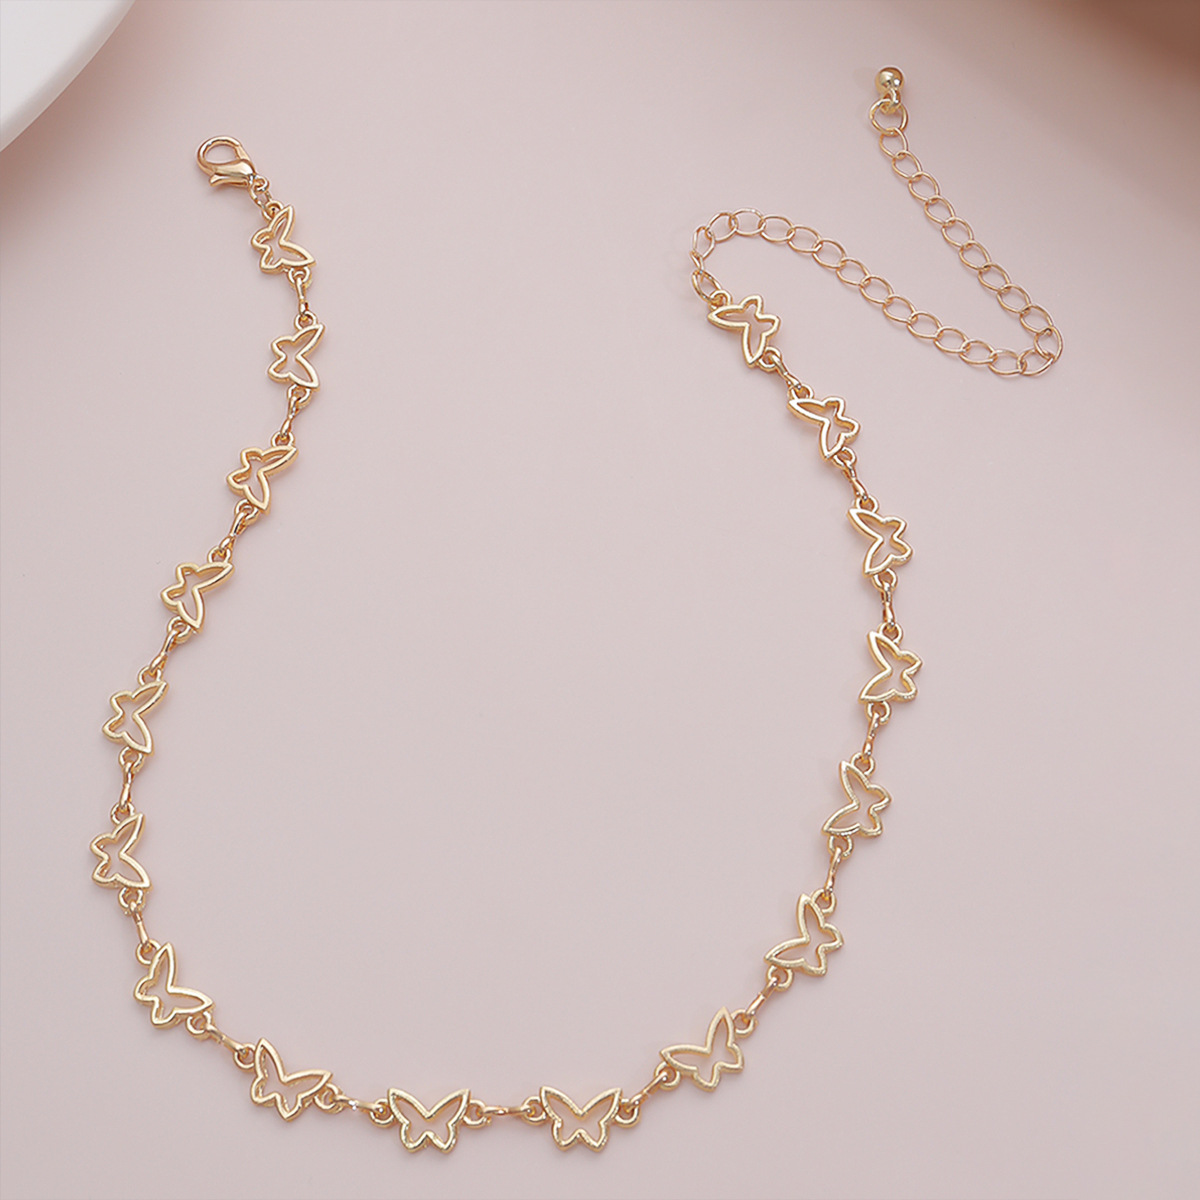 fashion jewelry simple geometric single-layer fashion item temperament short paragraph clavicle hollow small butterfly necklace wholesale nihaojewelry NHXR225463